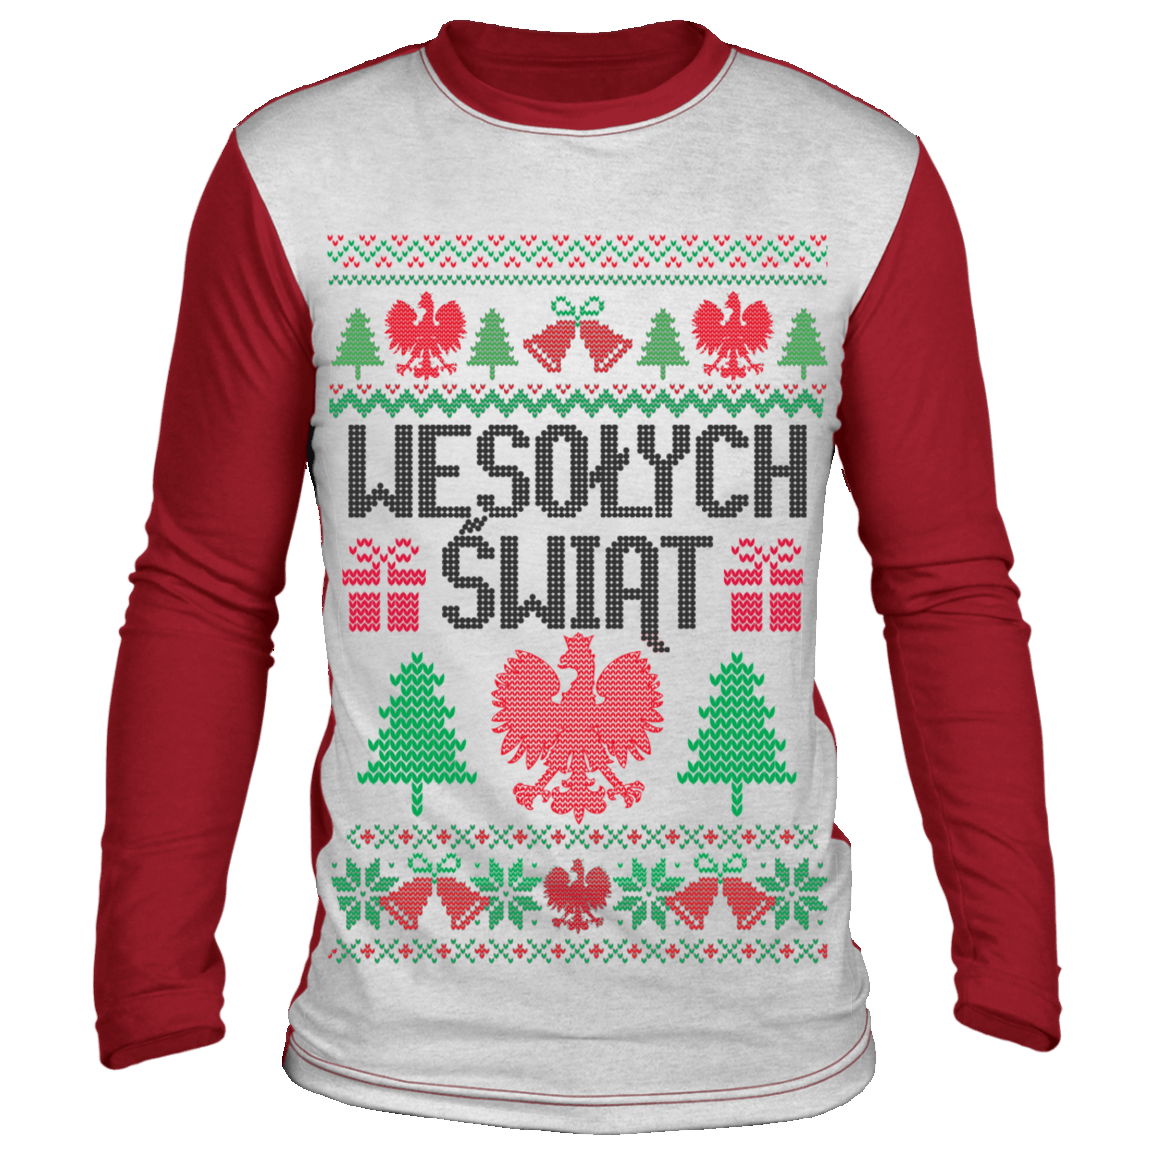 Merry Christmas In Polish - White/Red / S - Polish Shirt Store